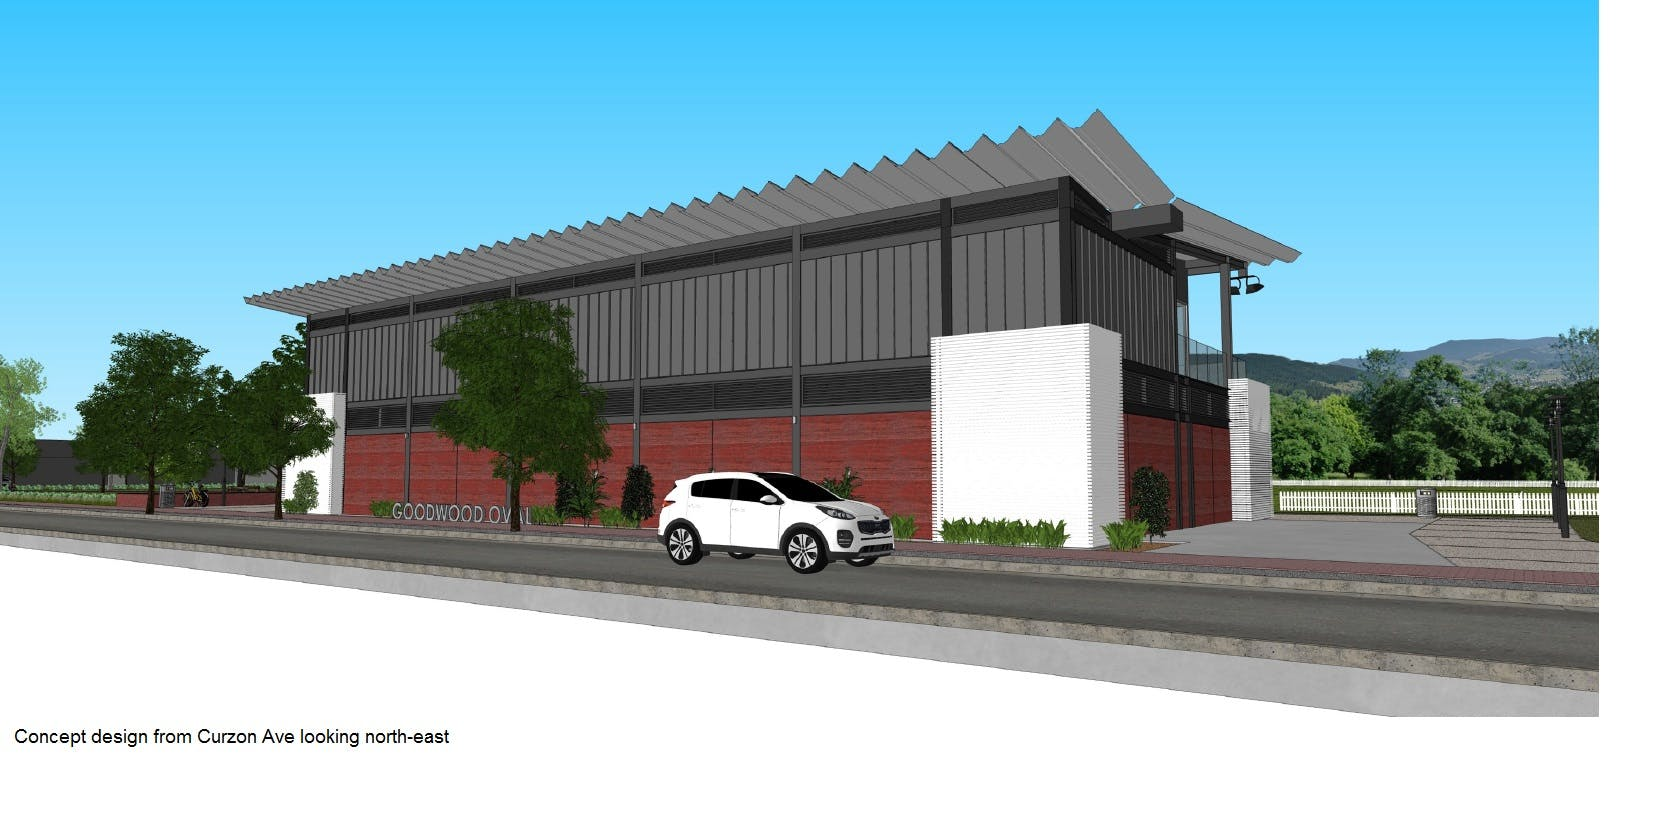 Concept Image of Goodwood Oval Grandstand Curzon Ave NE